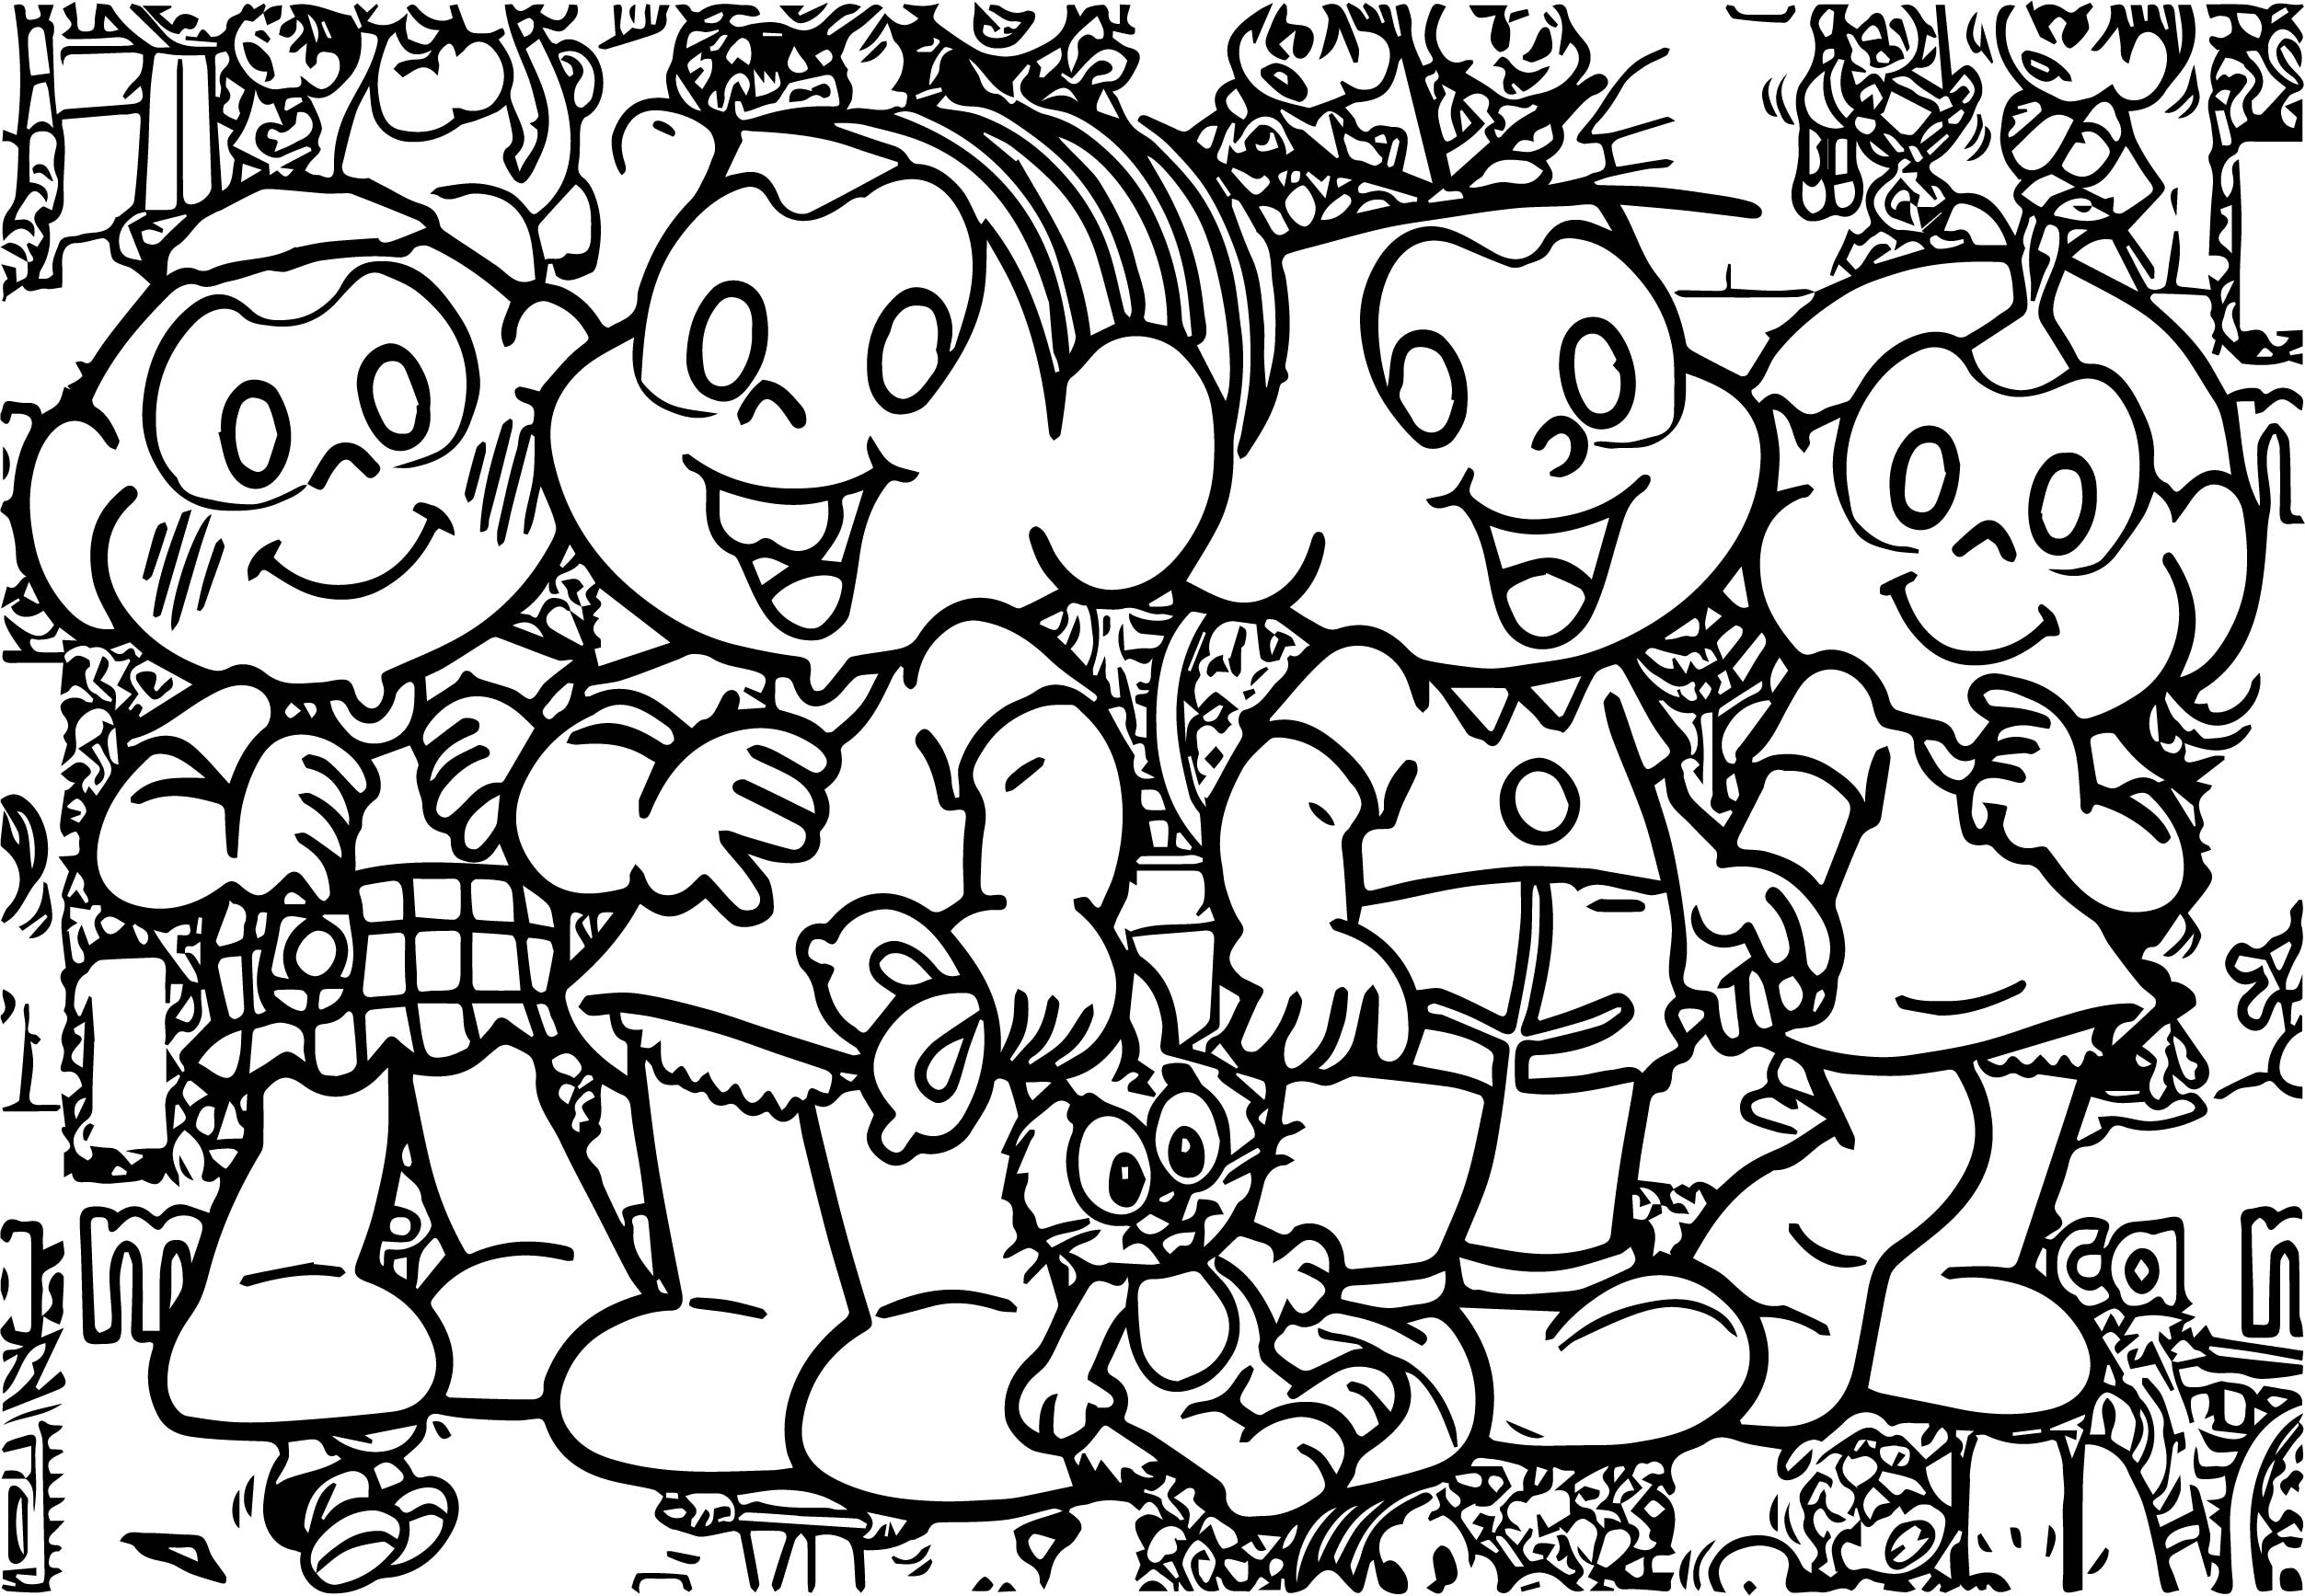 Meet The People Who Inspired The Characters From The Mon Class Coloring Page